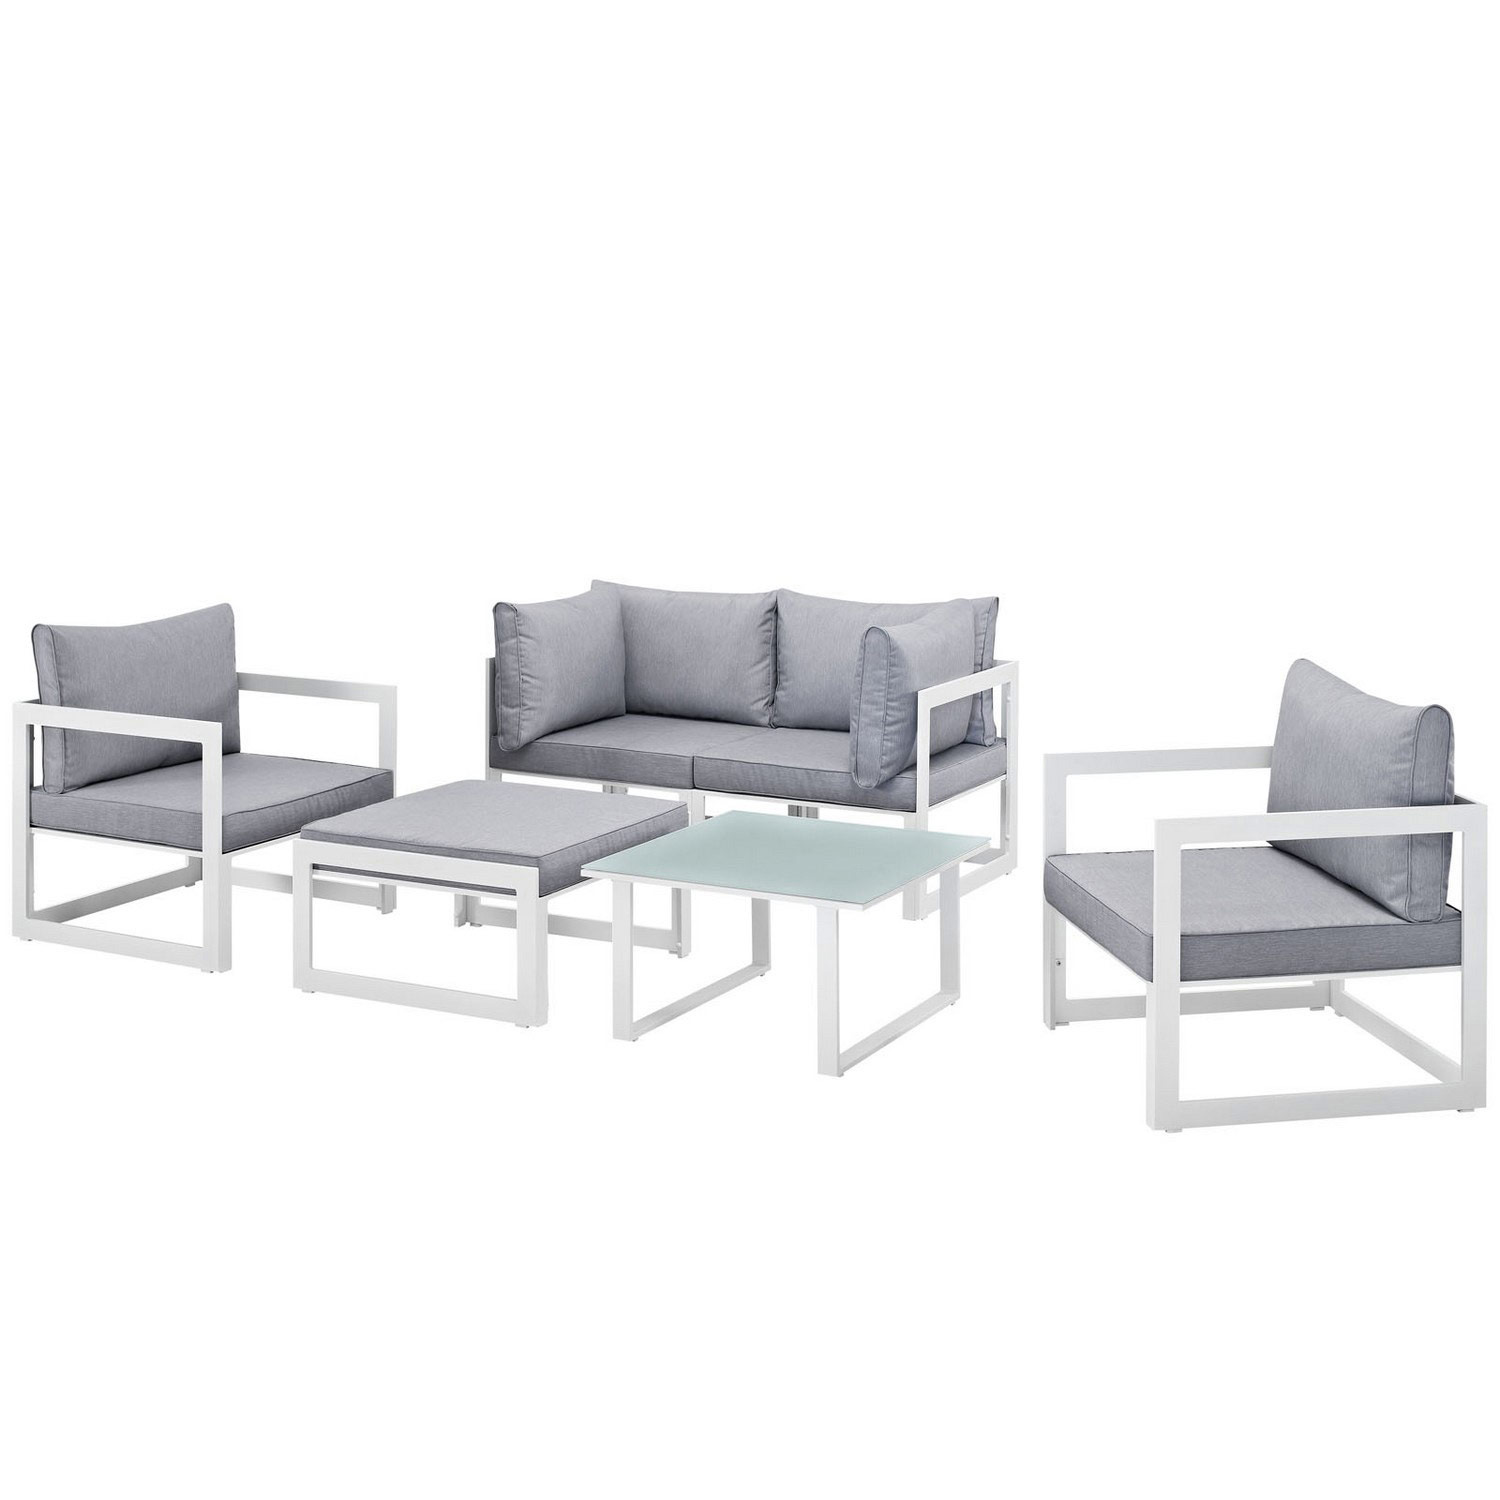 Modway Fortuna 6 Piece Outdoor Patio Sectional Sofa Set - White/Gray